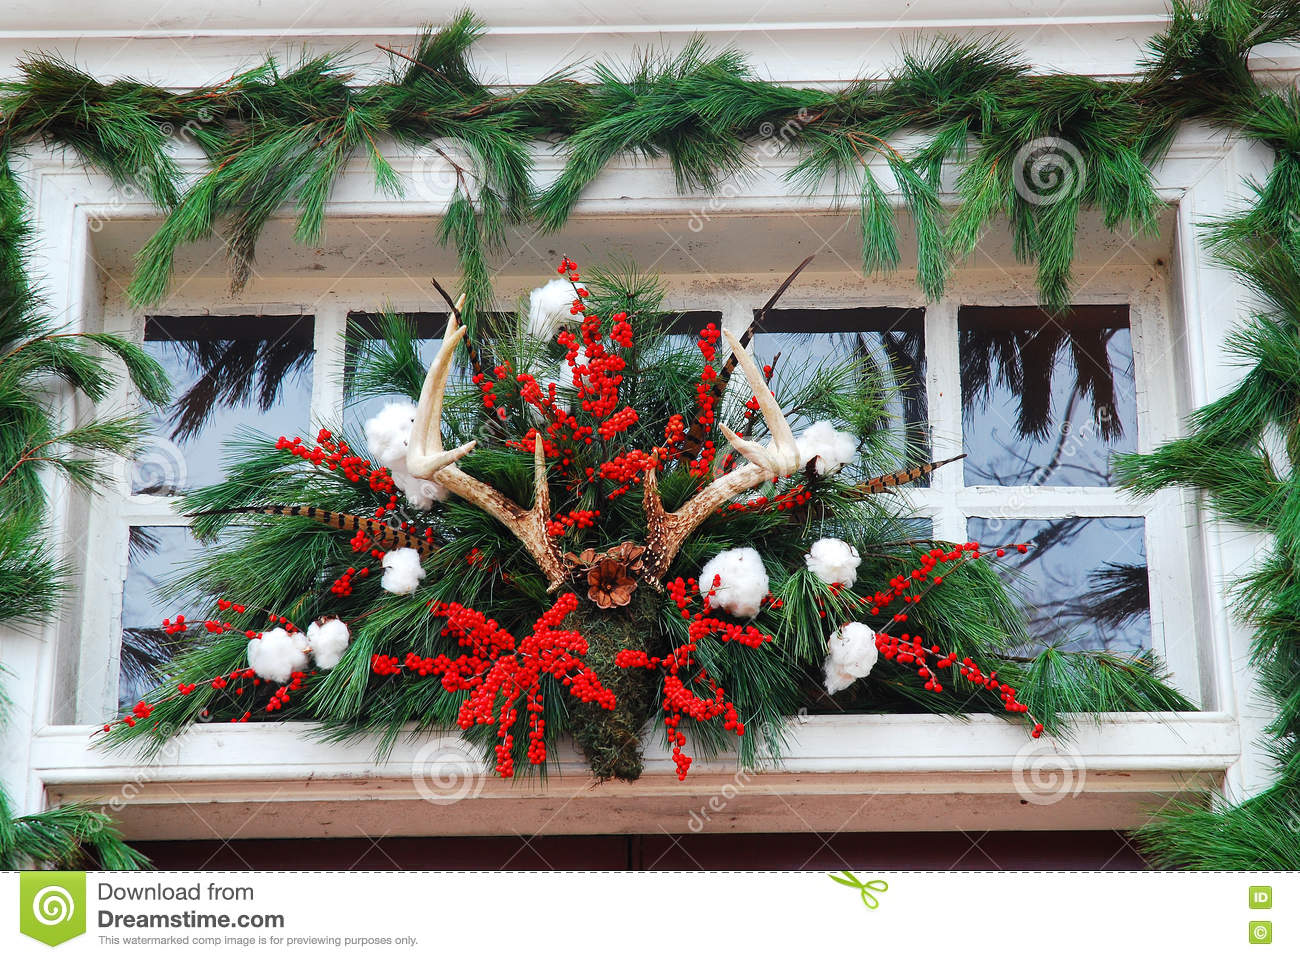 williamsburg christmas decorations made from pine tree leaves and deer antlers - Williamsburg Decorated For Christmas